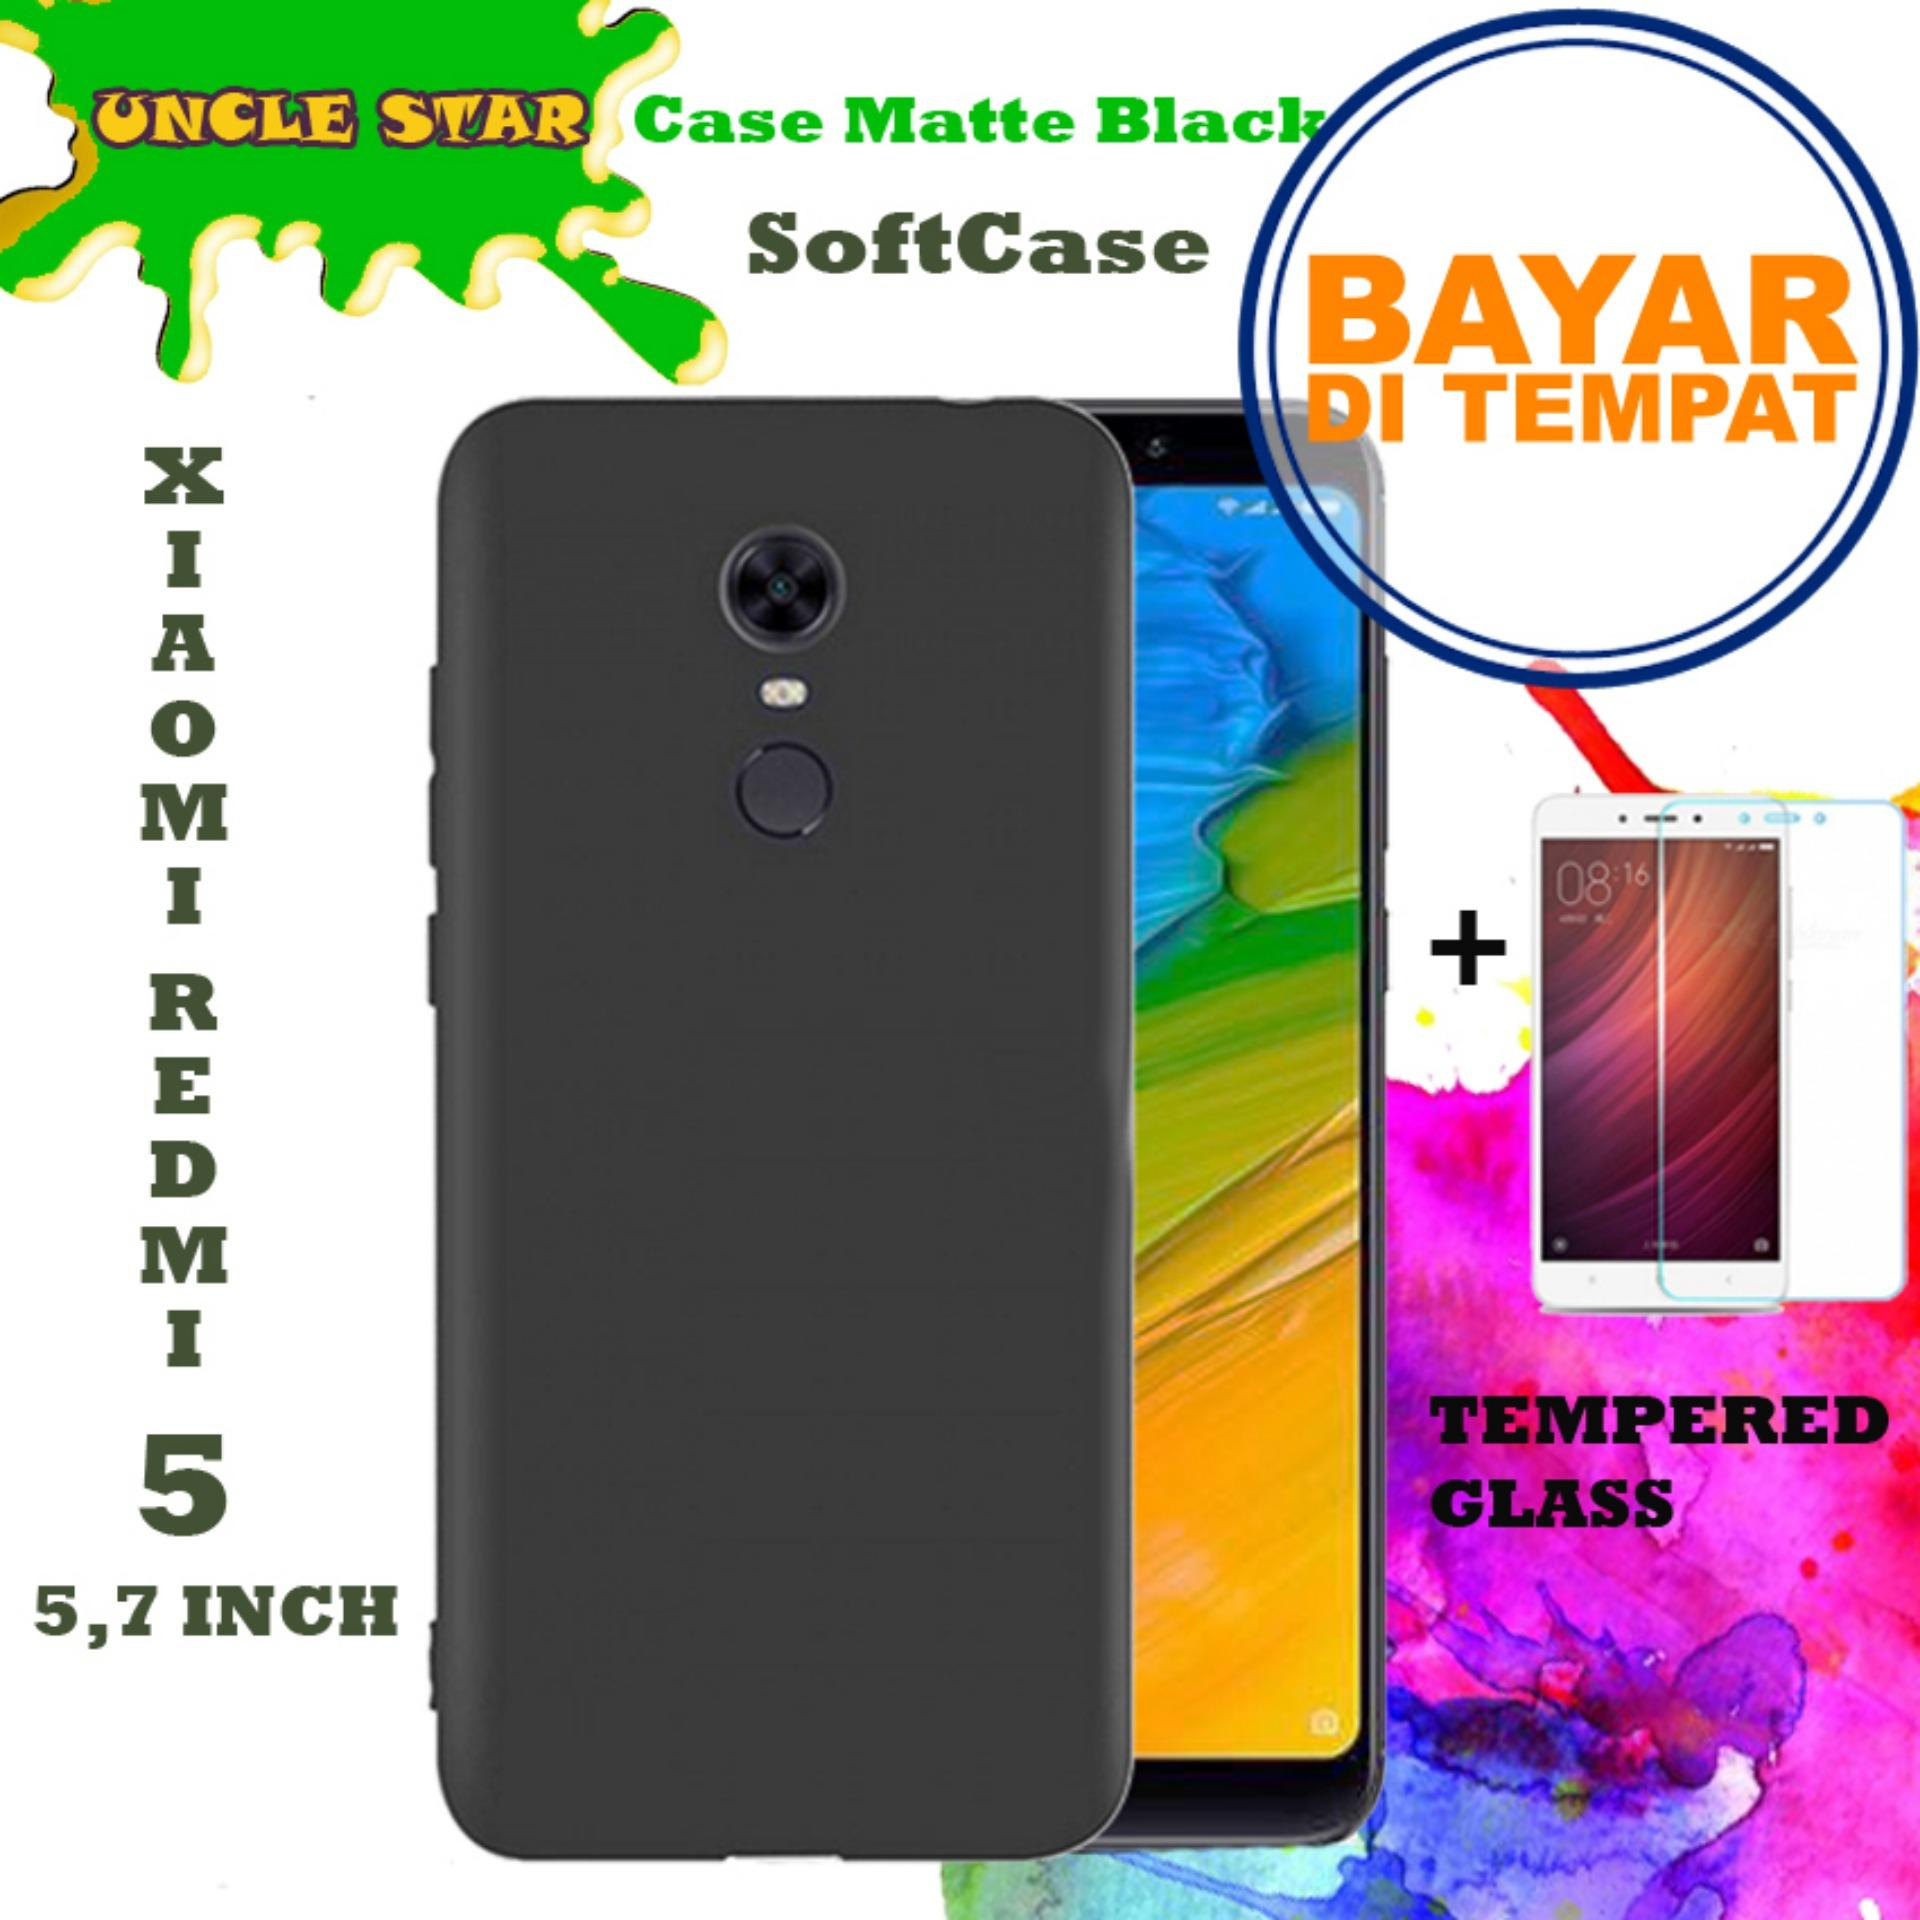 Buy Sell Cheapest Silicone Cover Glass Best Quality Product Deals Backdoor Redmi 4a Uncle Star Case Mate Elegant Tahan Kotoran For Xiaomi 5 Layar 57